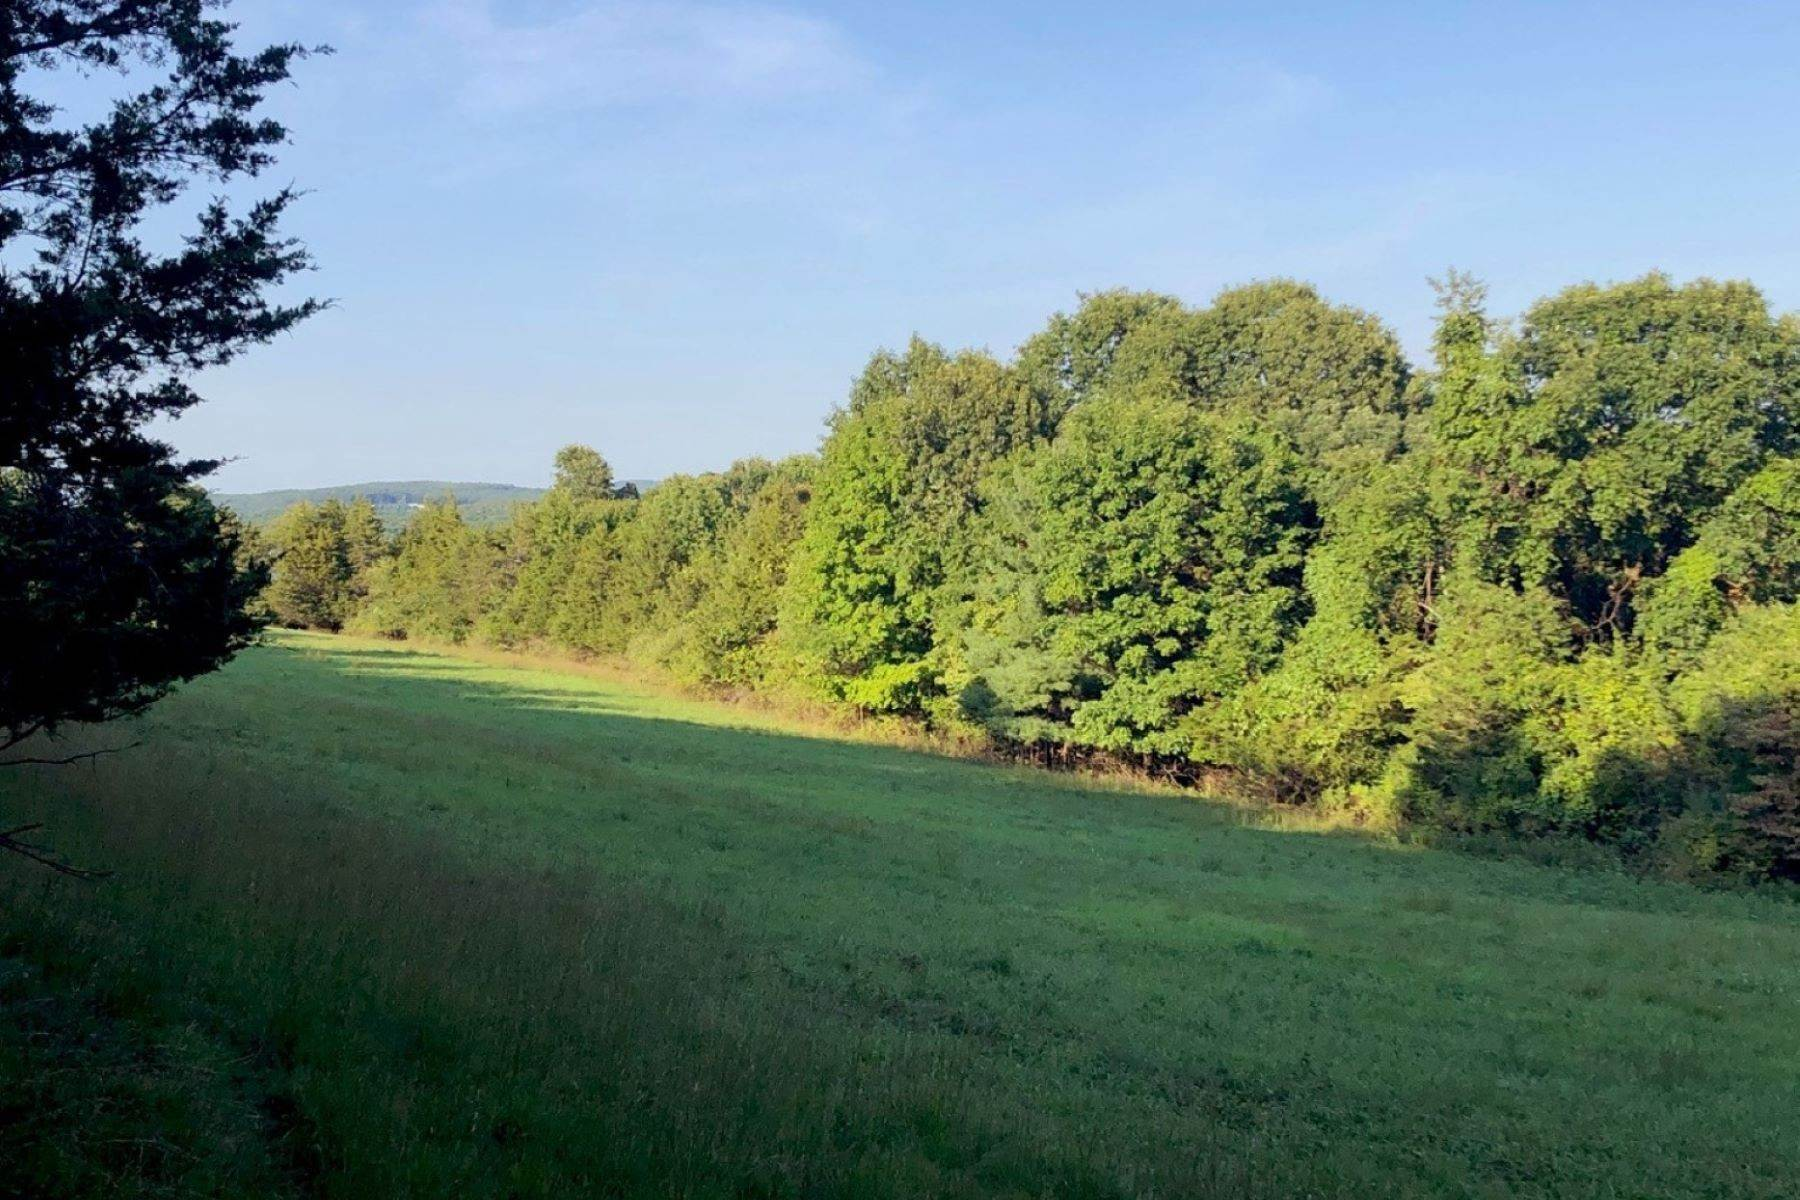 Land for Sale at Dream Building Site Fitzsimmons Rd Milan, New York 12571 United States